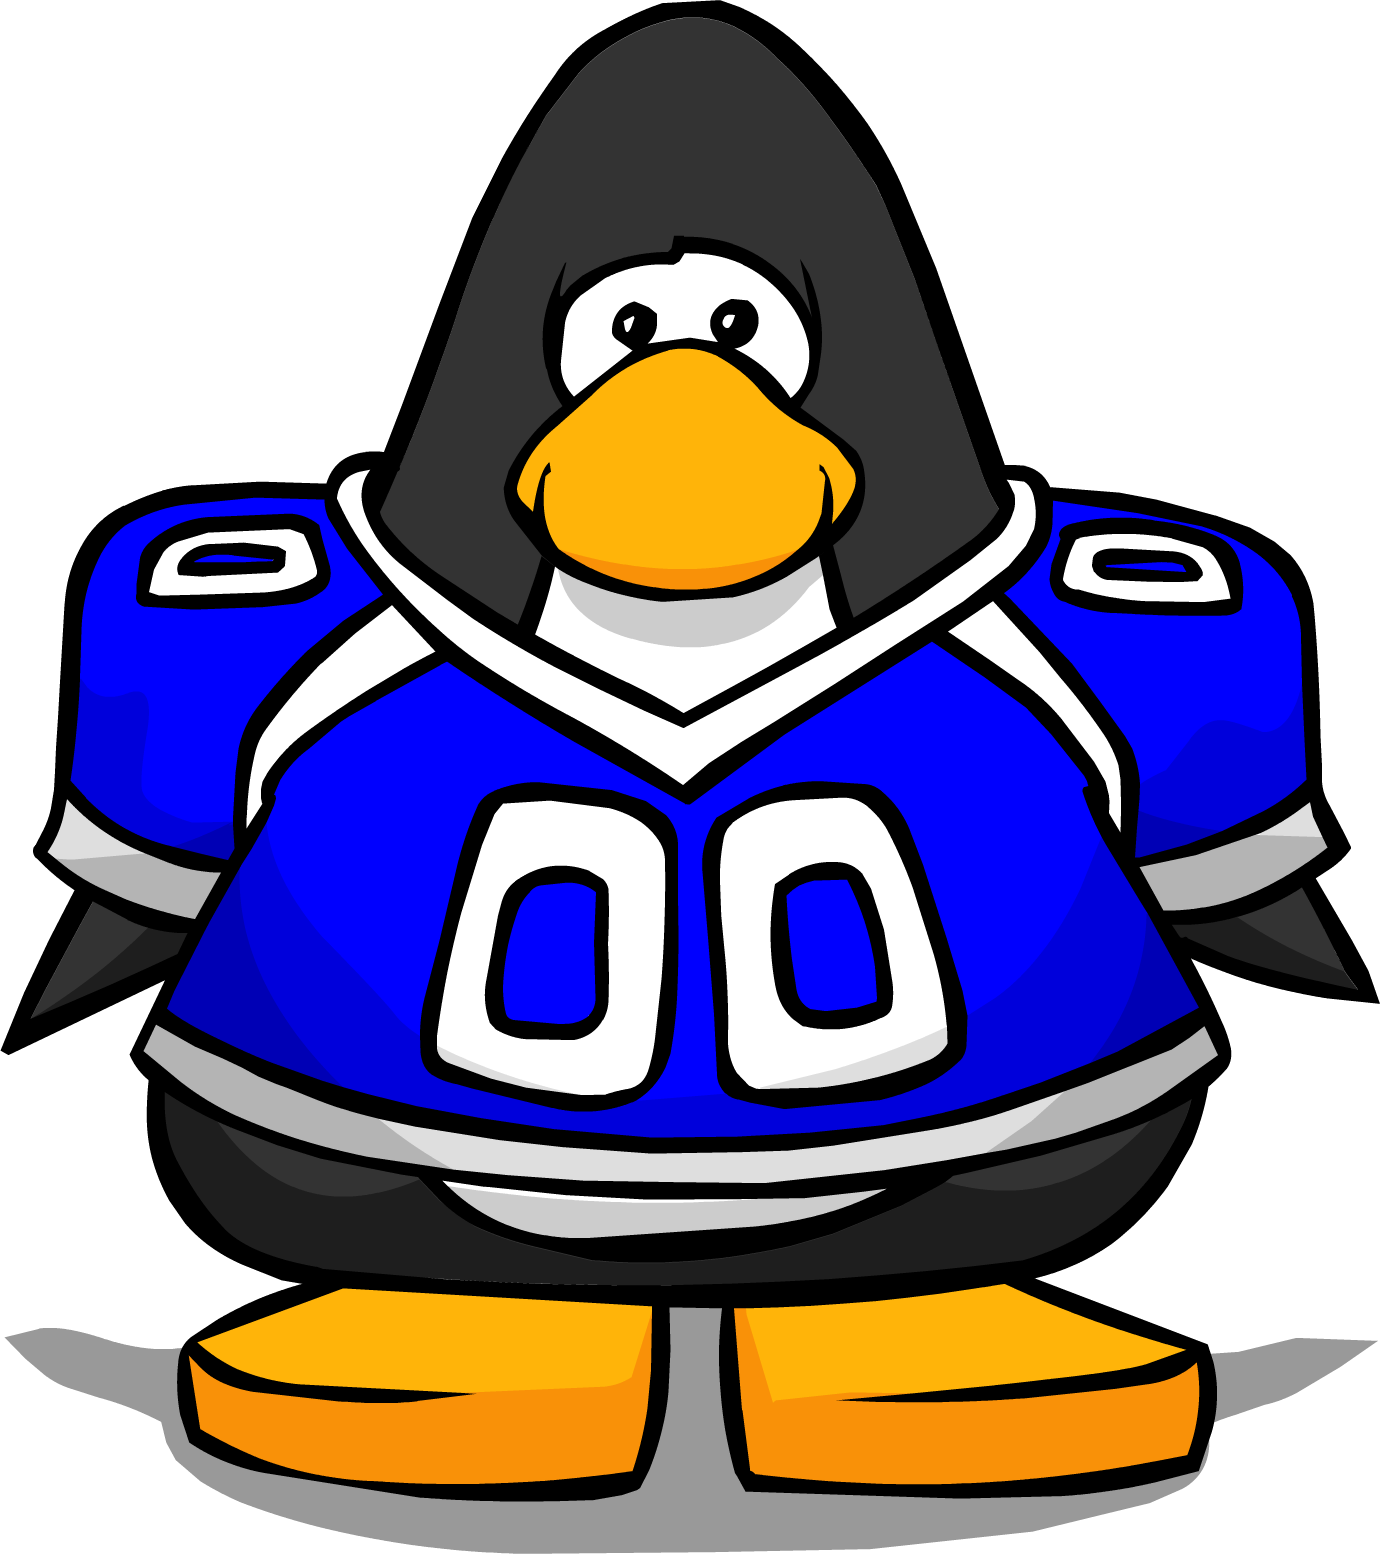 Clipart blue football player clip art black and white download Image - Blue Football Jersey from a Player Card.PNG | Club Penguin ... clip art black and white download